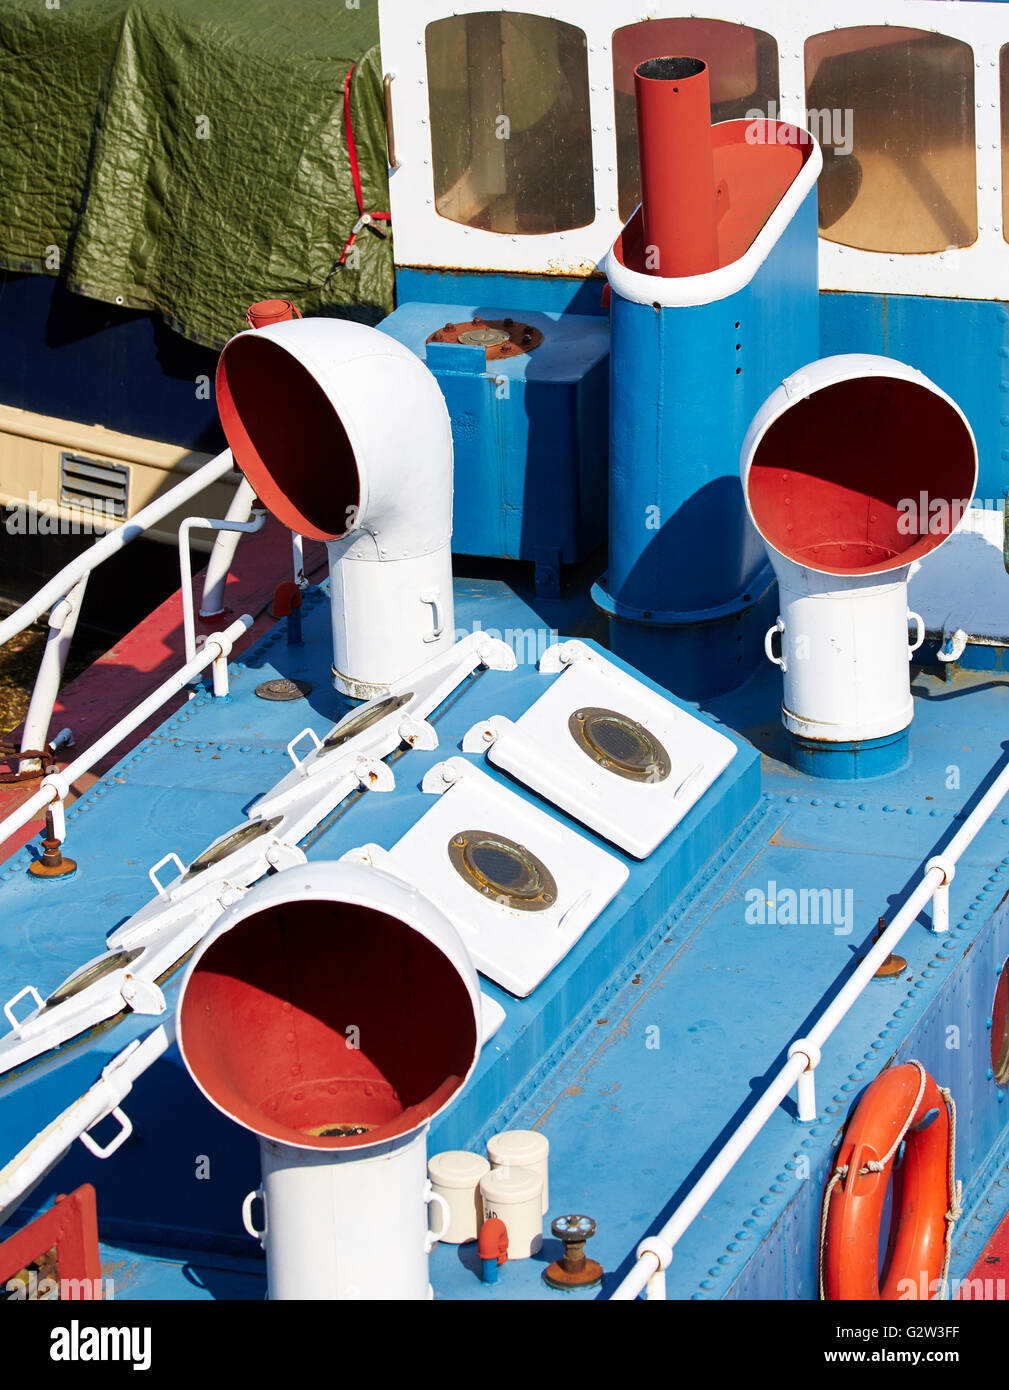 Colorful superstructure of small ship or boat painted in red, white and blue with traditional trumpet ventilation - Stock Image